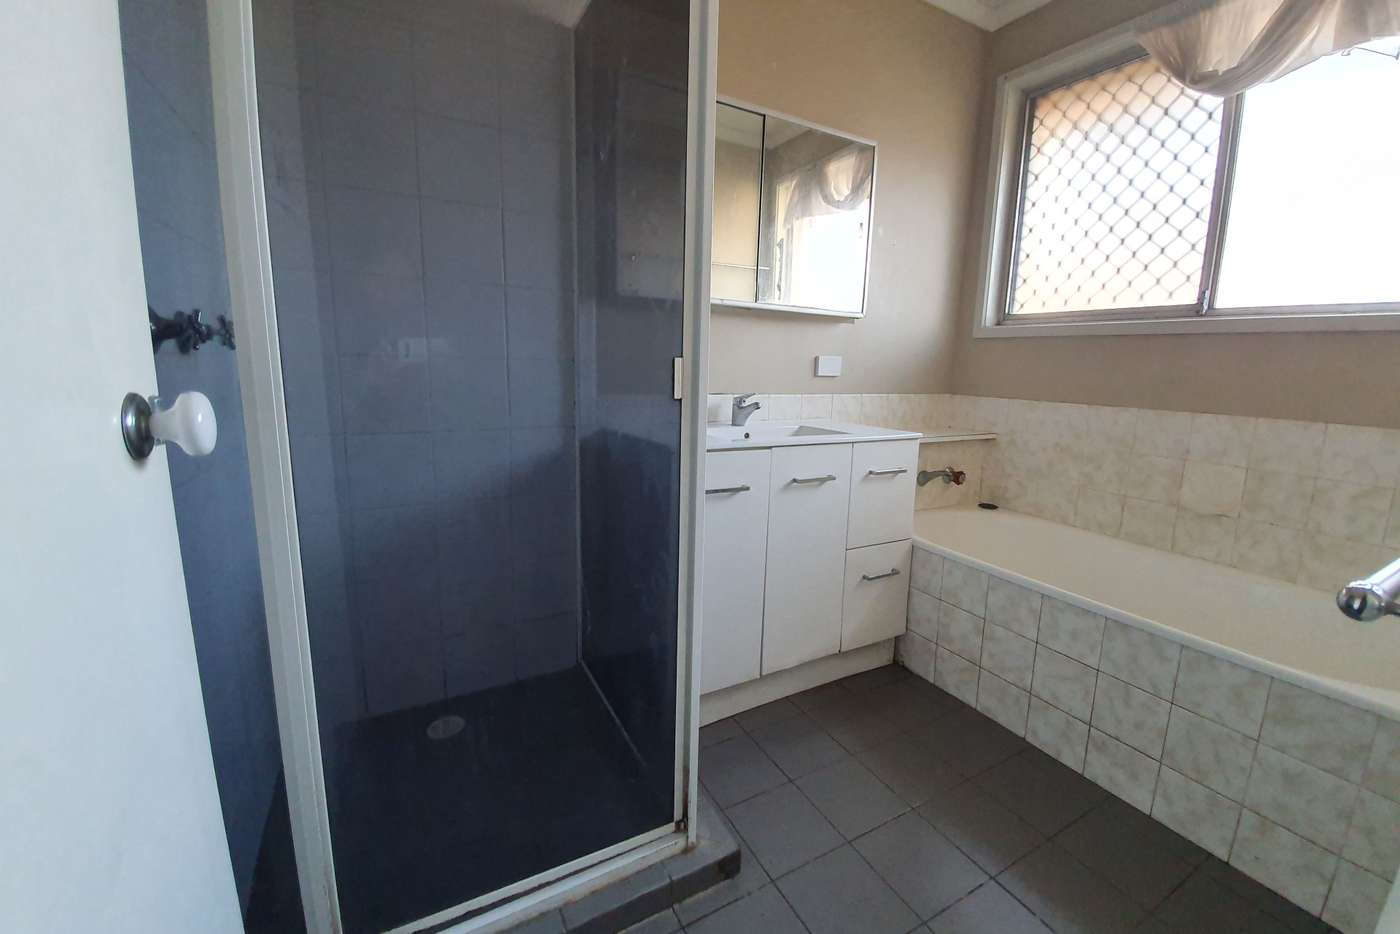 Sixth view of Homely house listing, 69 Mains Road, Sunnybank QLD 4109